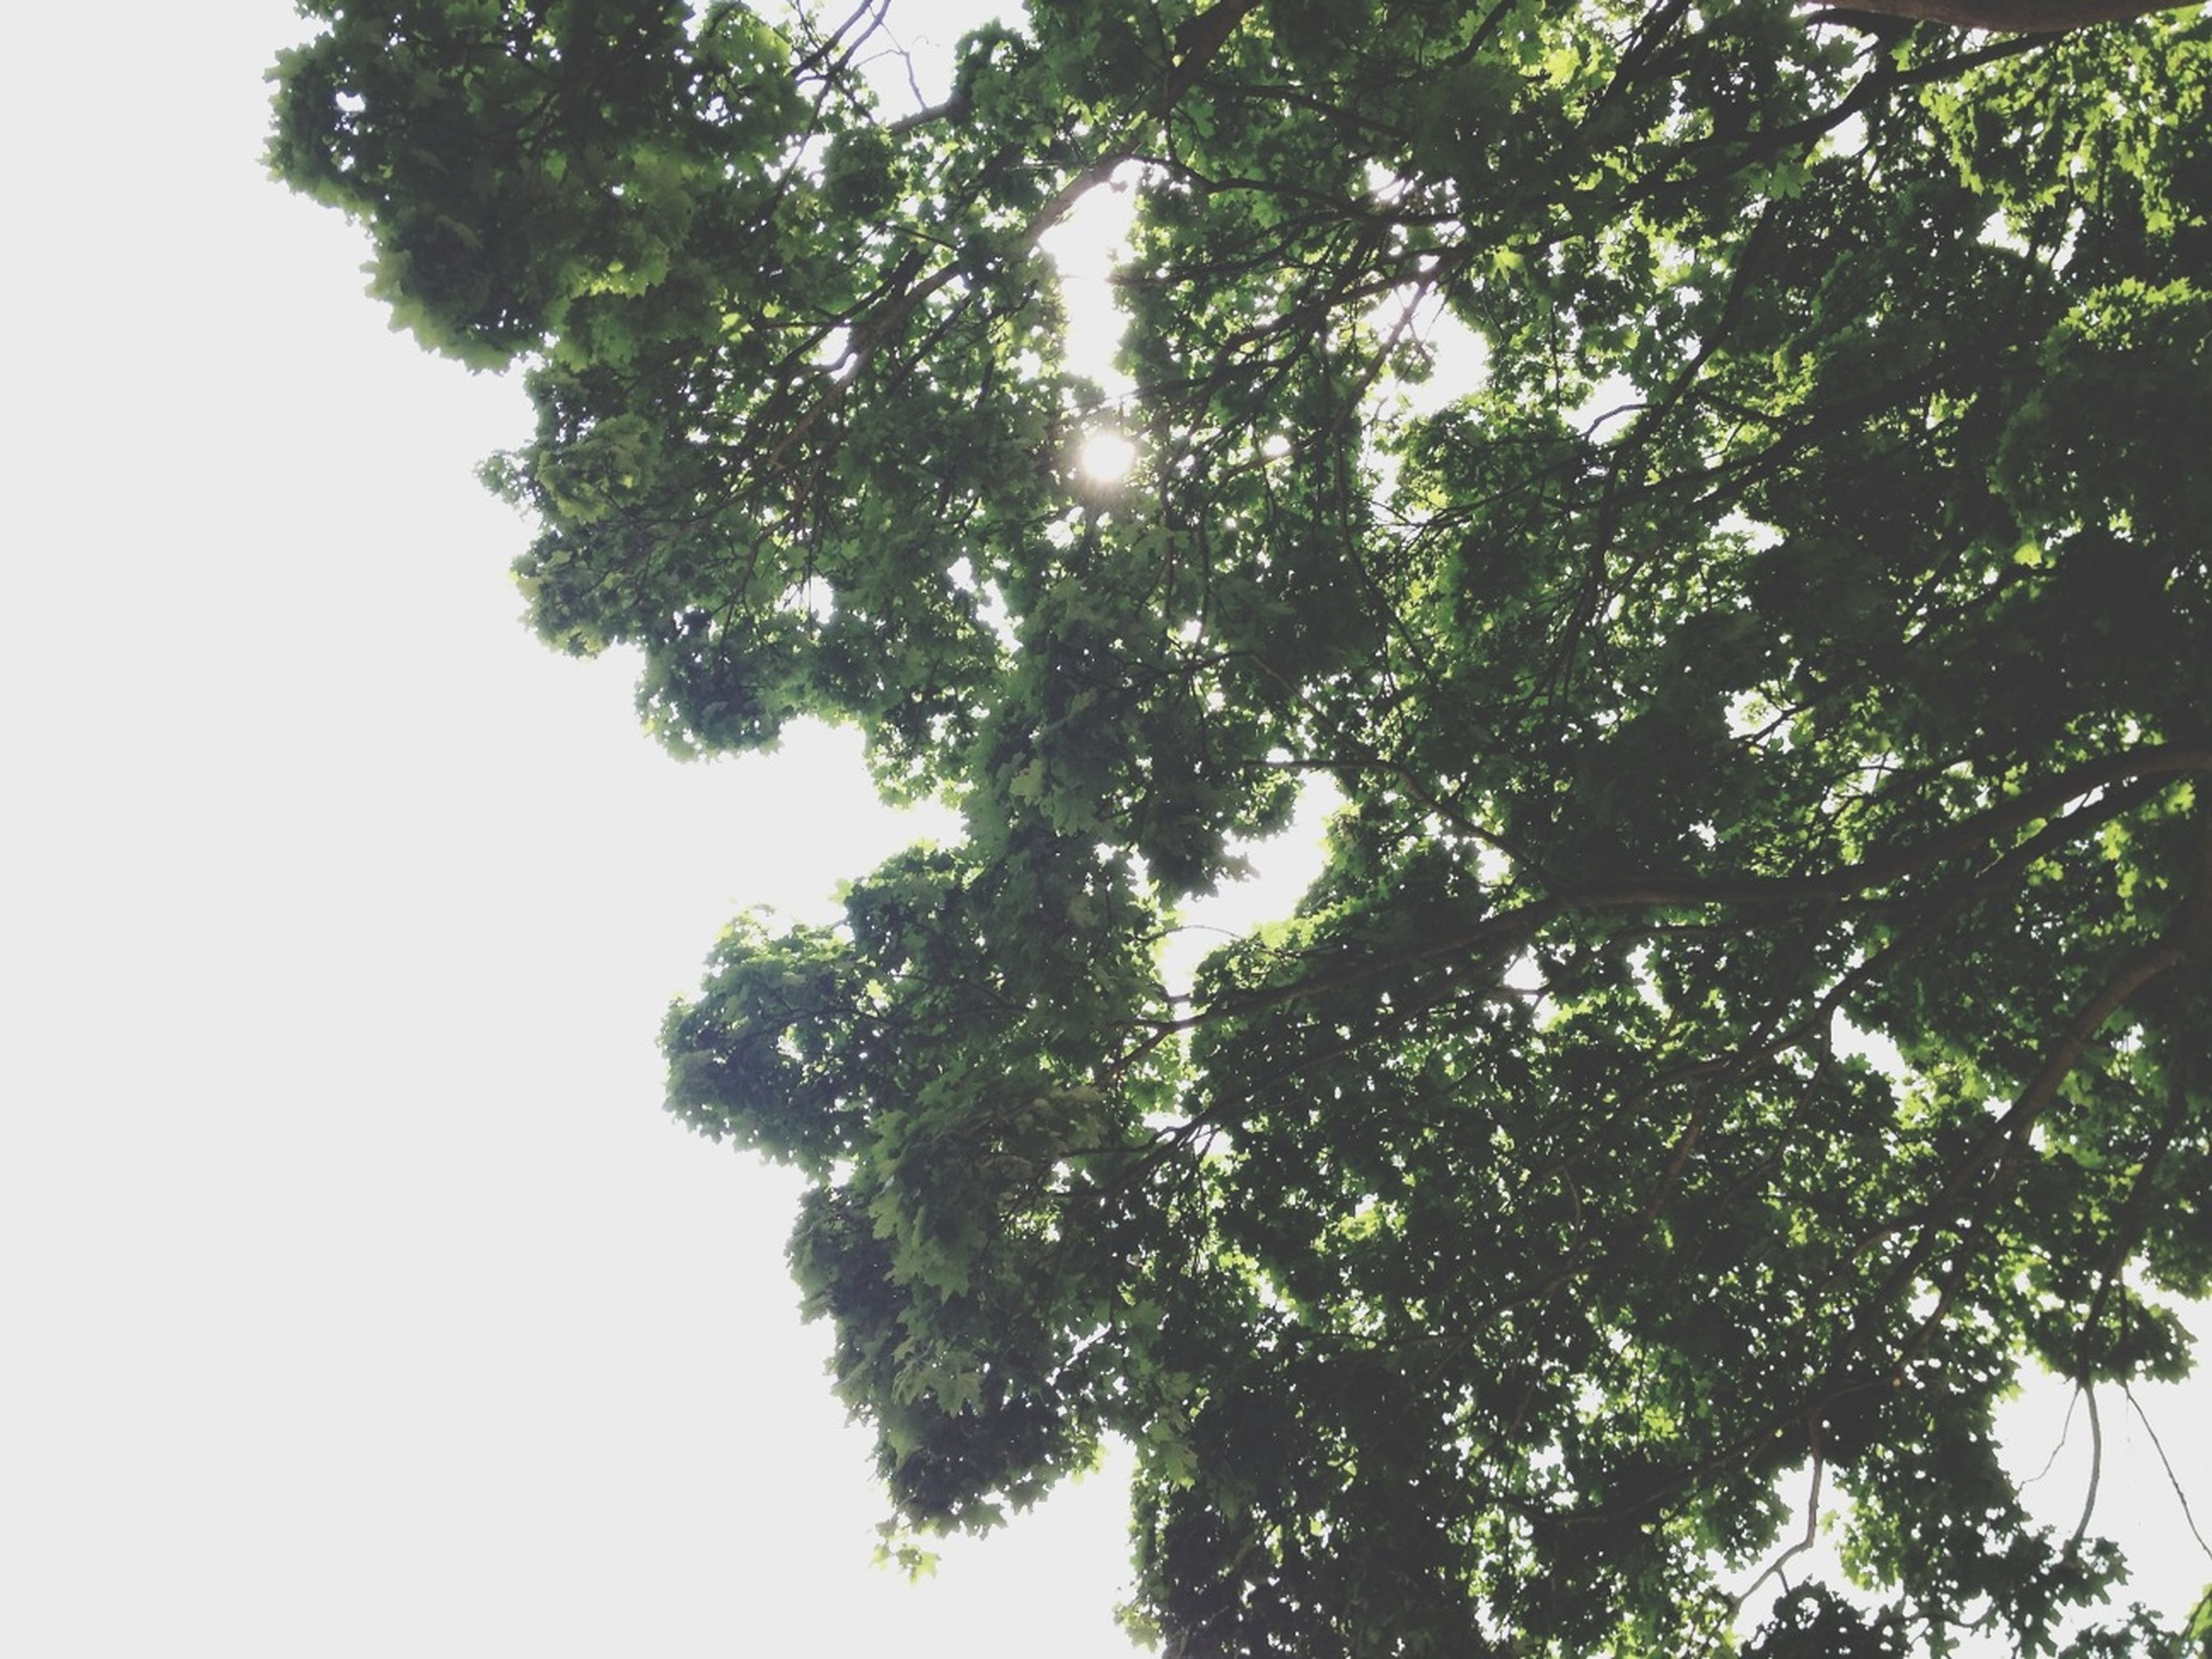 tree, low angle view, branch, growth, clear sky, nature, tranquility, green color, beauty in nature, leaf, day, no people, outdoors, sky, sunlight, directly below, scenics, green, lush foliage, tranquil scene